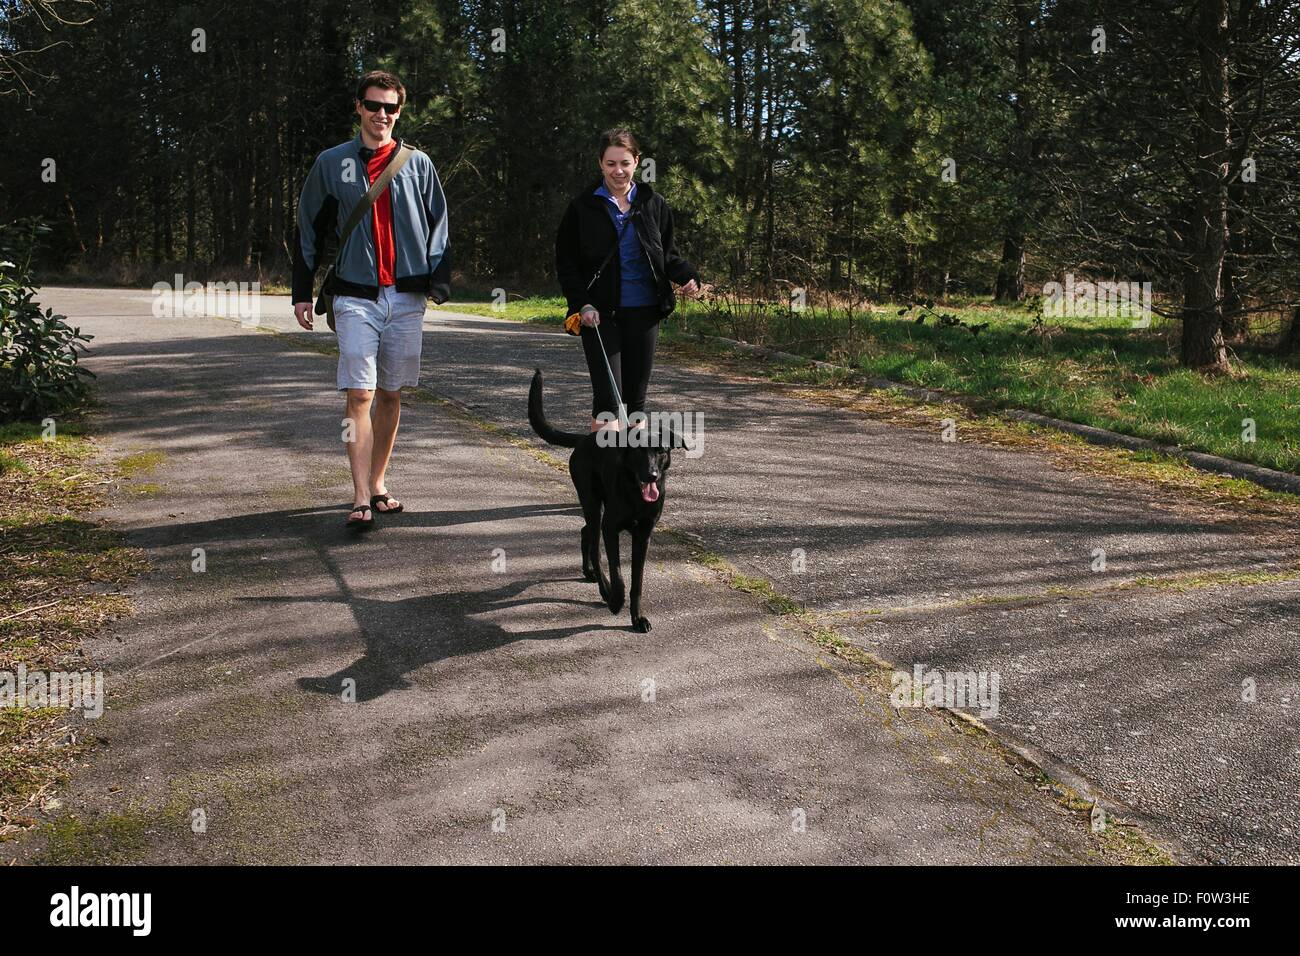 Couple walking a dog in sunlit park - Stock Image